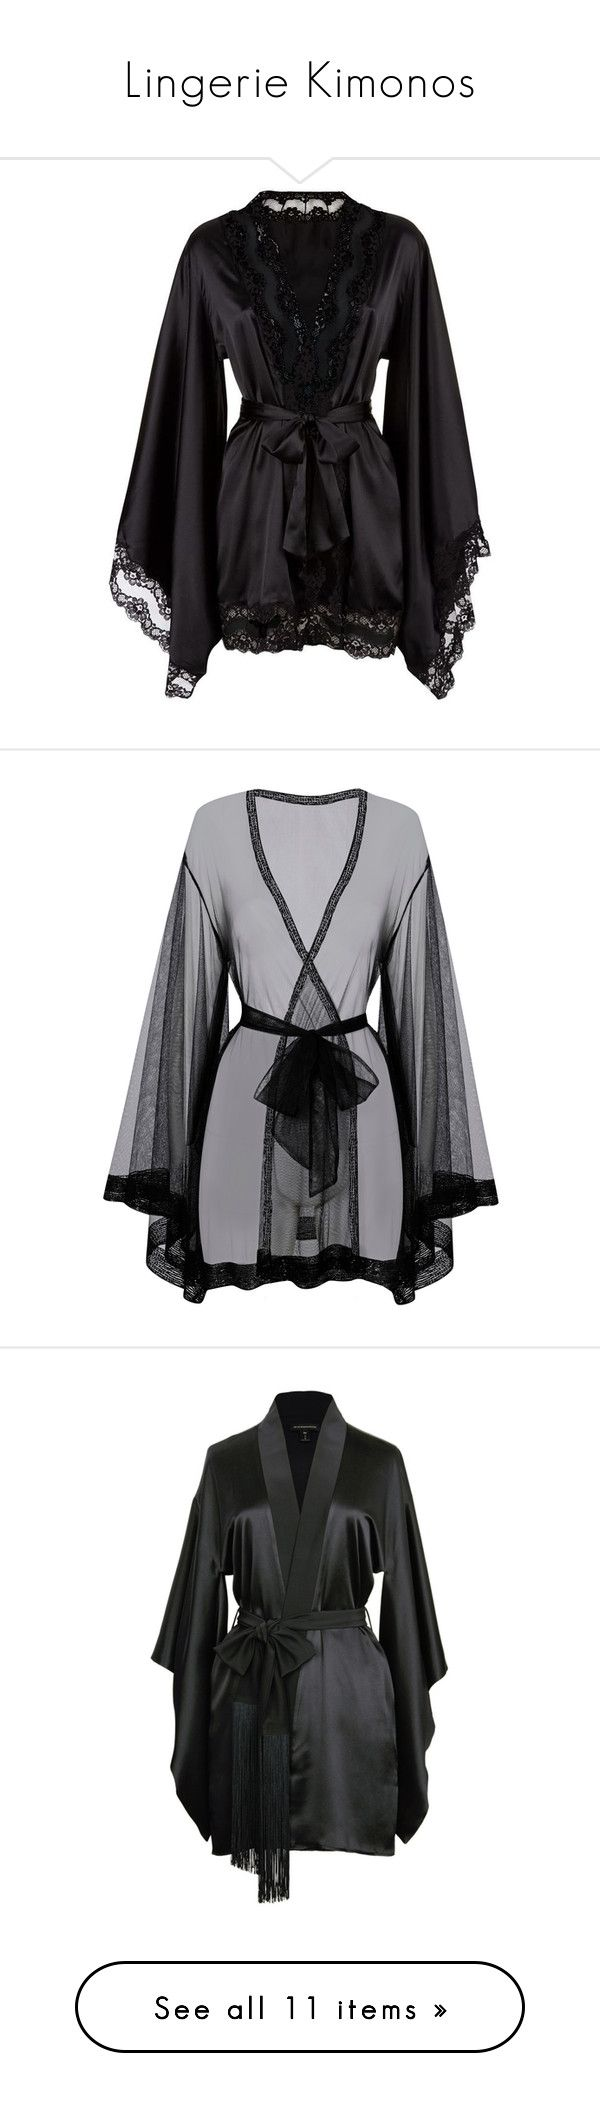 """Lingerie Kimonos"" by yandereotaku ❤ liked on Polyvore featuring intimates, robes, lingerie, pajamas, dresses, underwear, kimono robe, agent provocateur lingerie, black kimono robe and black robe"